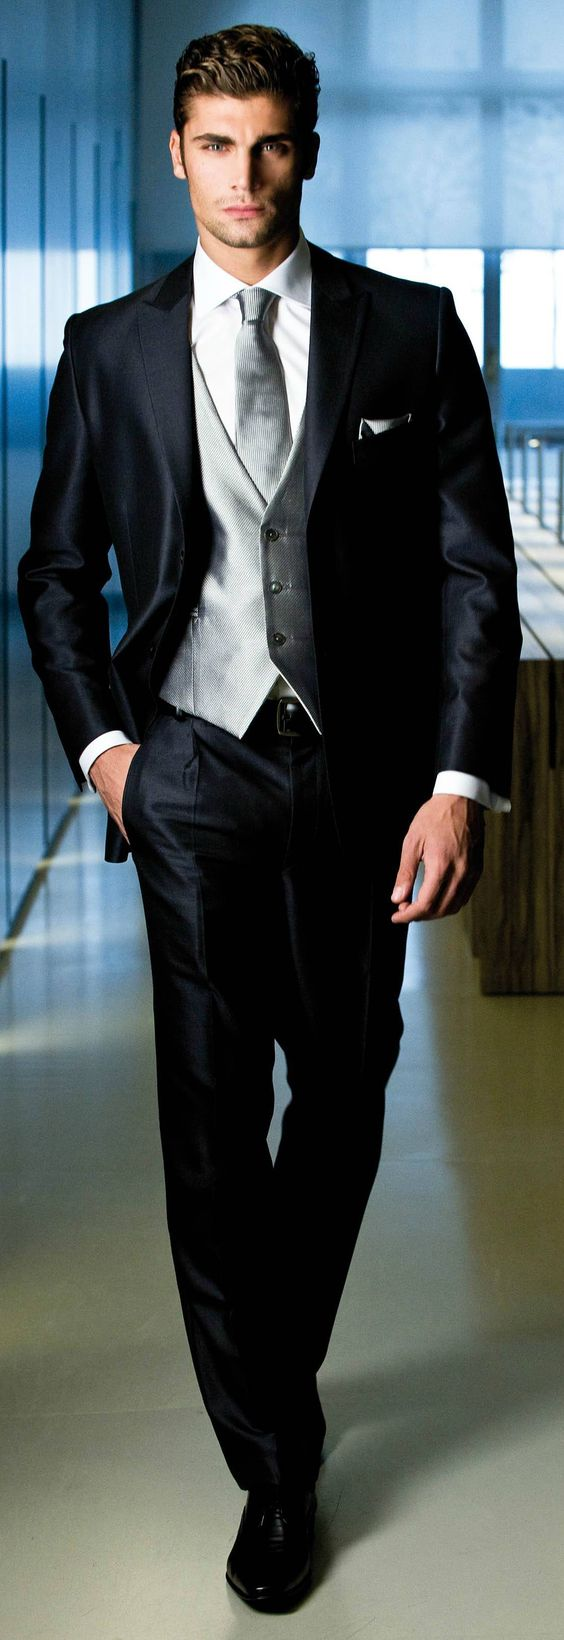 Awesome black formal suit for men